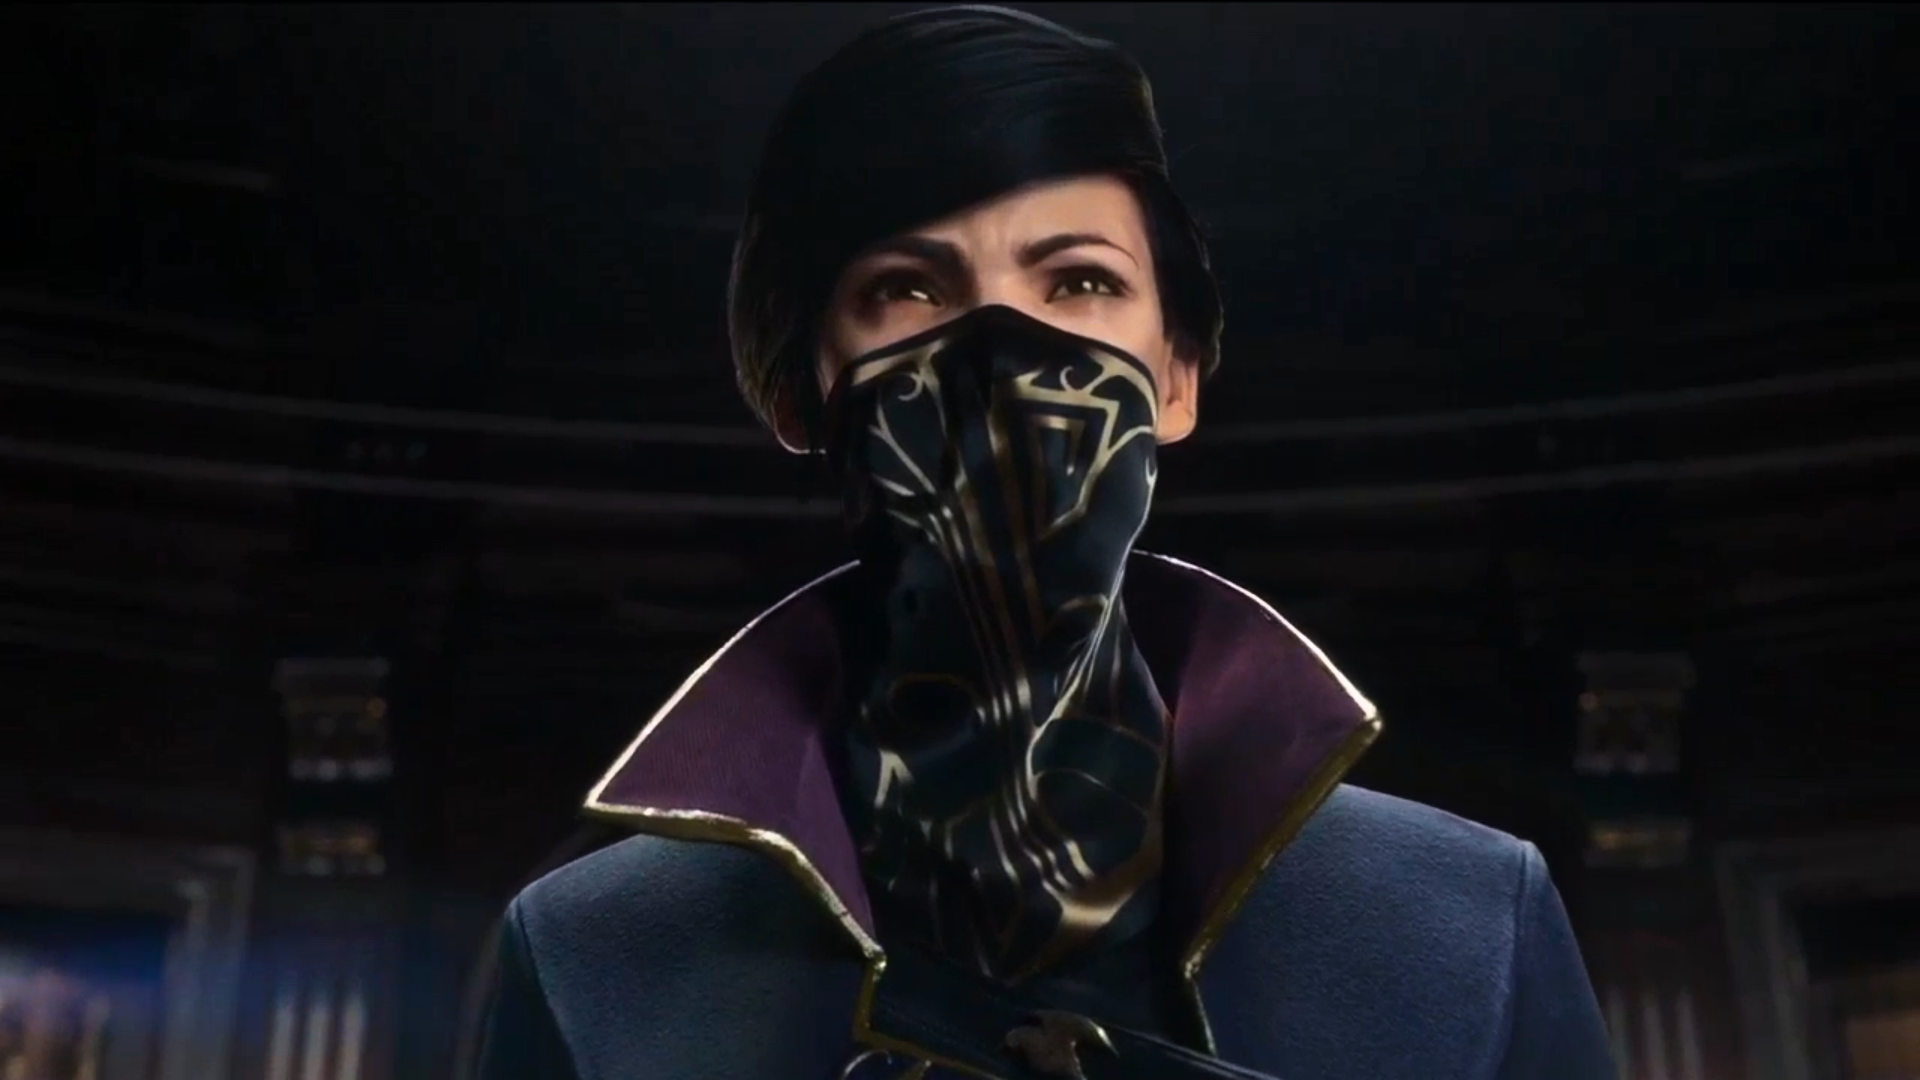 image - dishonored 2 emily | dishonored wiki | fandom powered